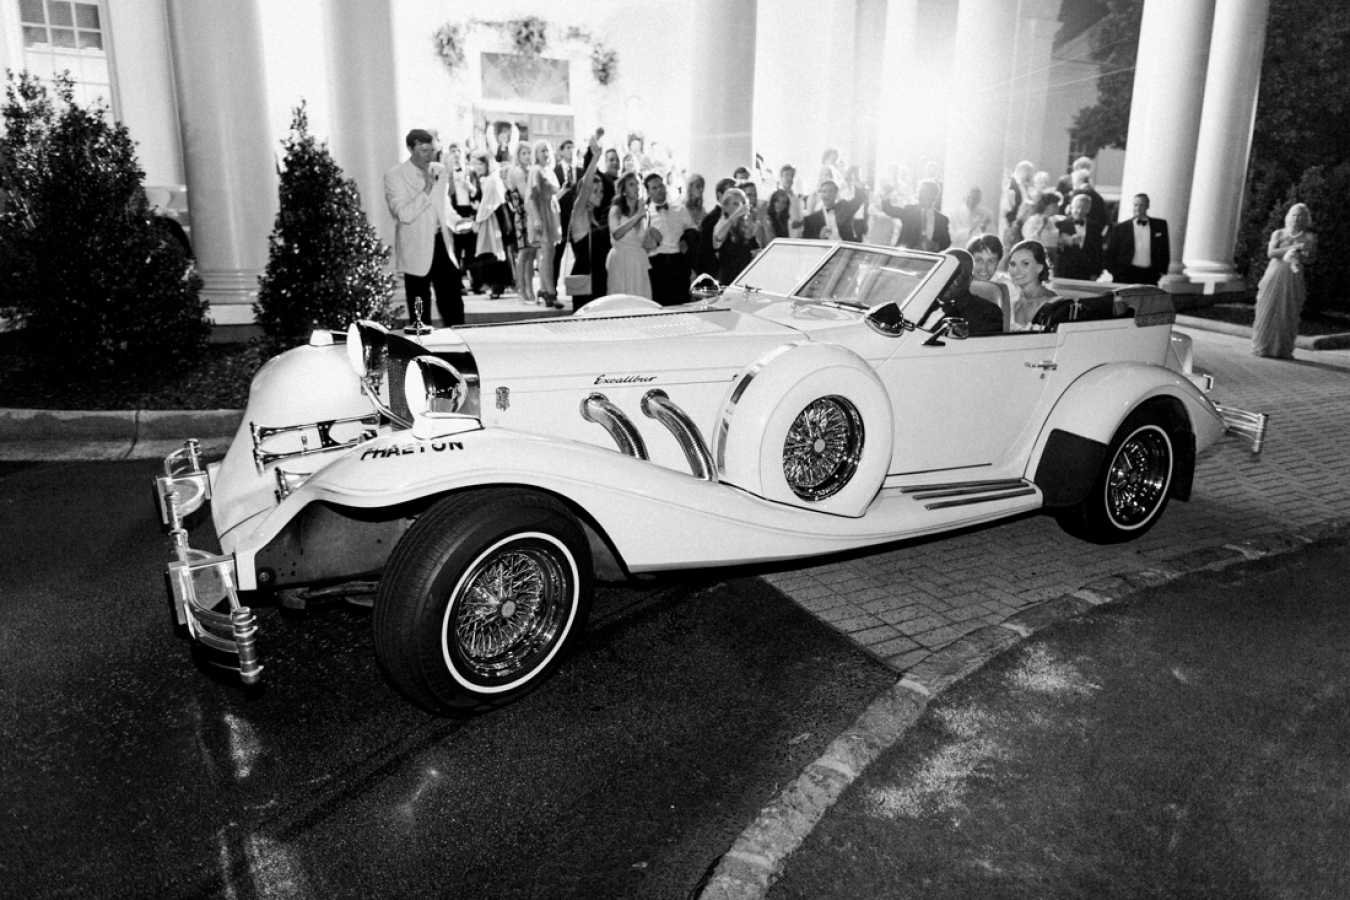 wedding-exit-in-white-vintage-car http://itgirlweddings.com/southern-white-tie-wedding/